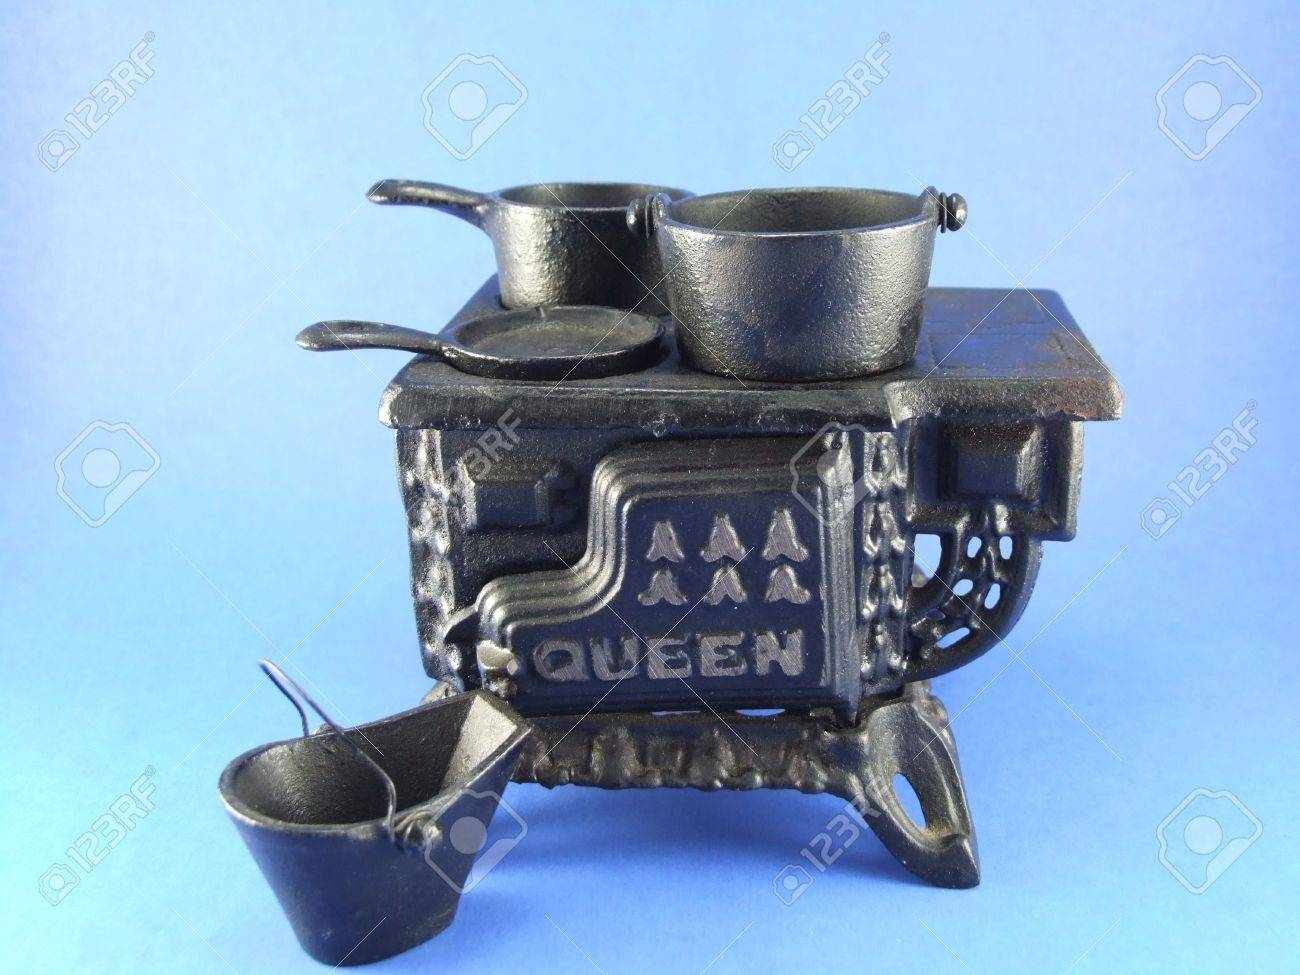 Smalle Kast Wit.Small Cast Iron Stove With Pans Stock Photo Picture And Royalty